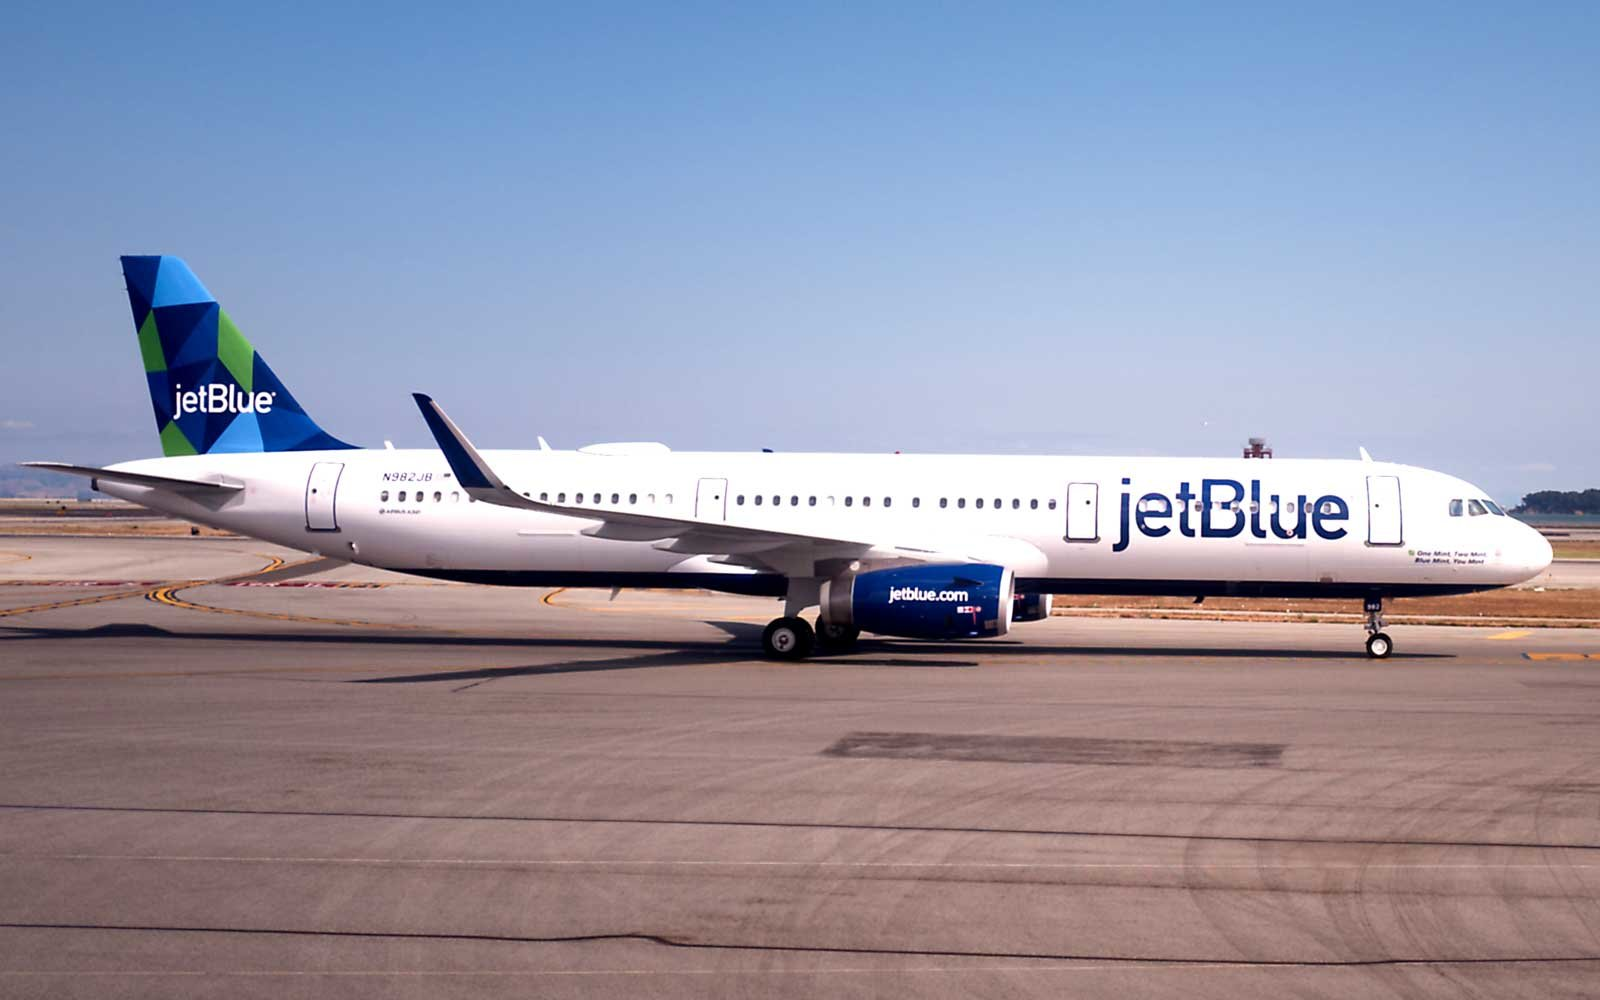 JetBlue passenger aircraft on the tarmac